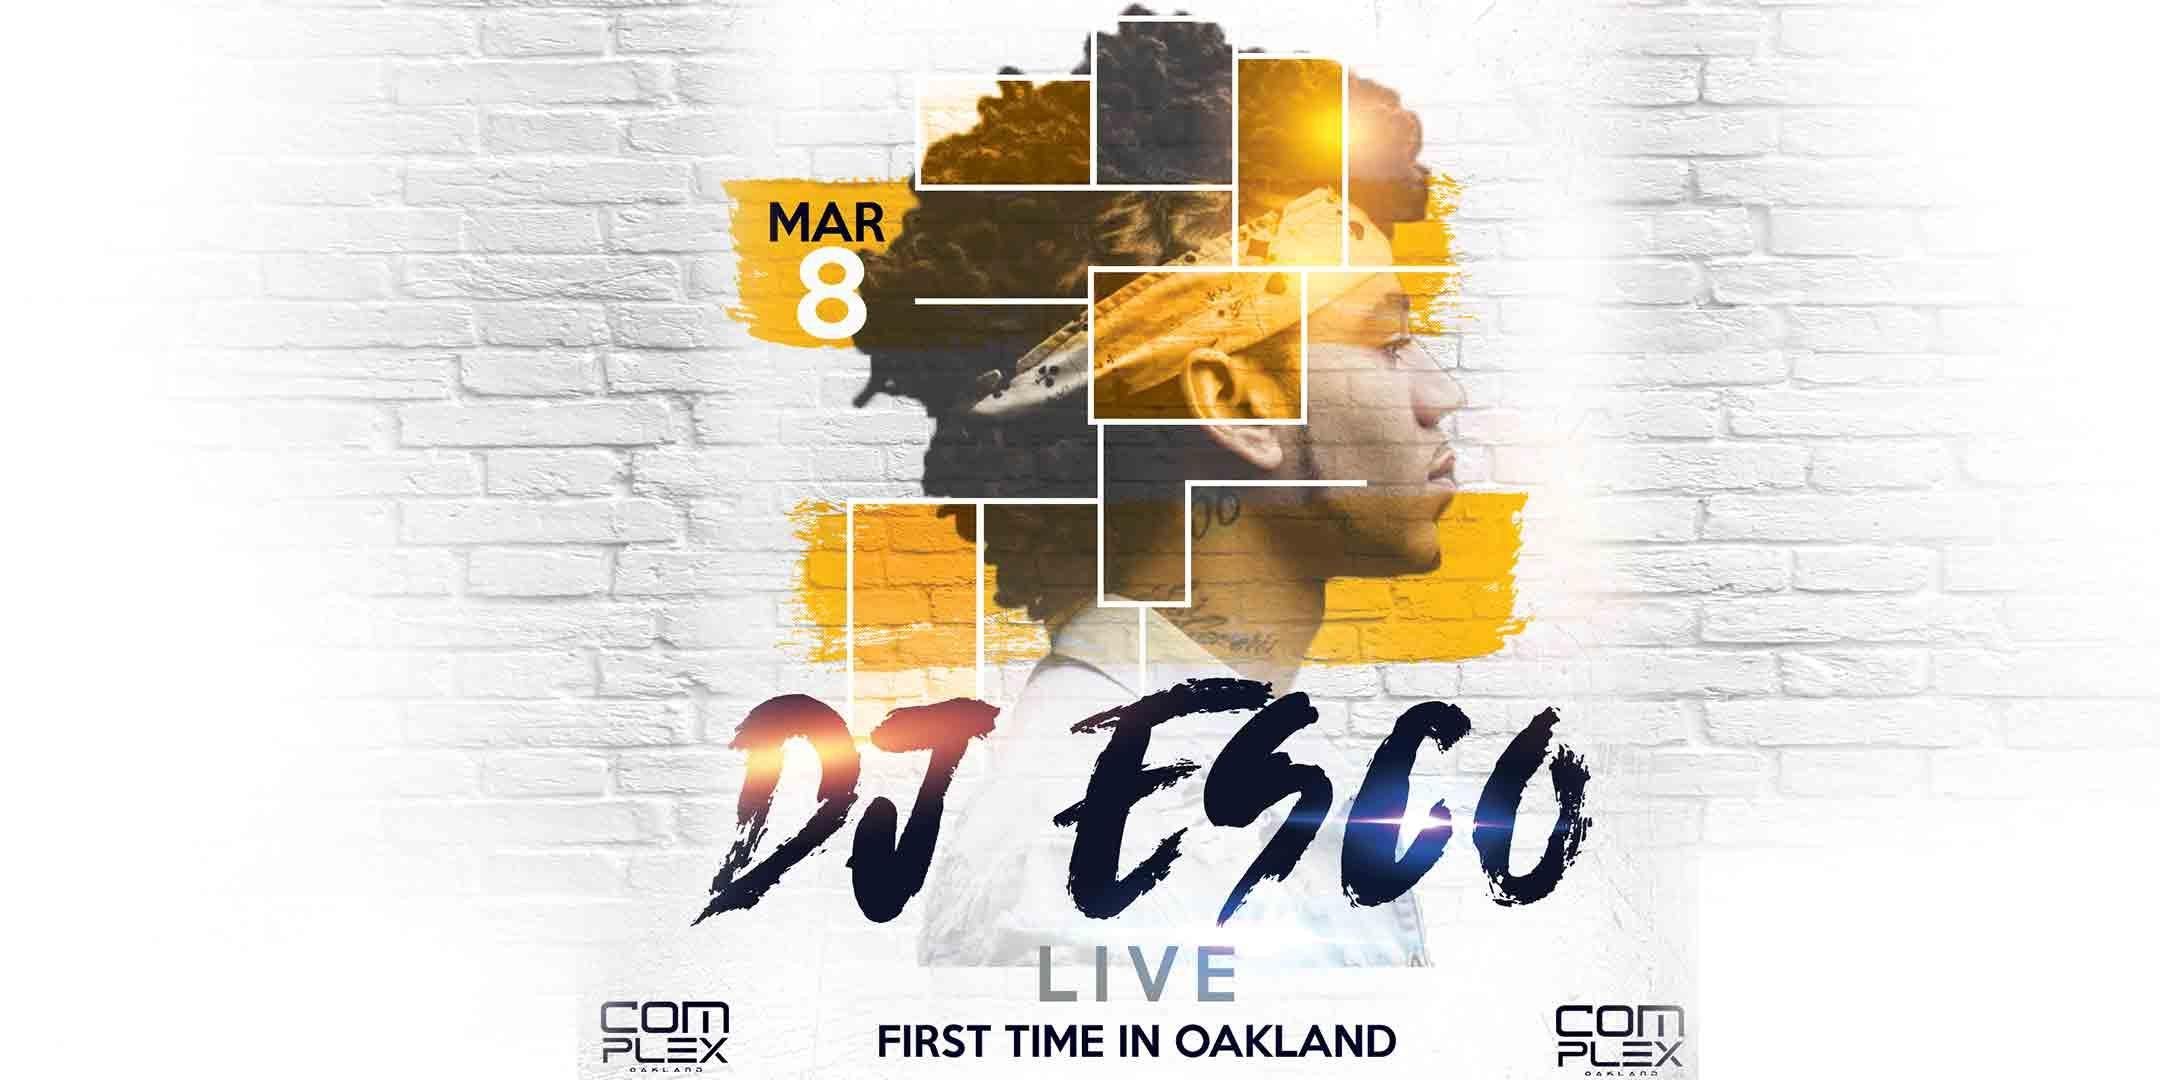 DJ ESCO ( FUTURE DJ) THE COOLEST DJ IN THE WORD LIVE- FIRST TIME IN OAKLAND